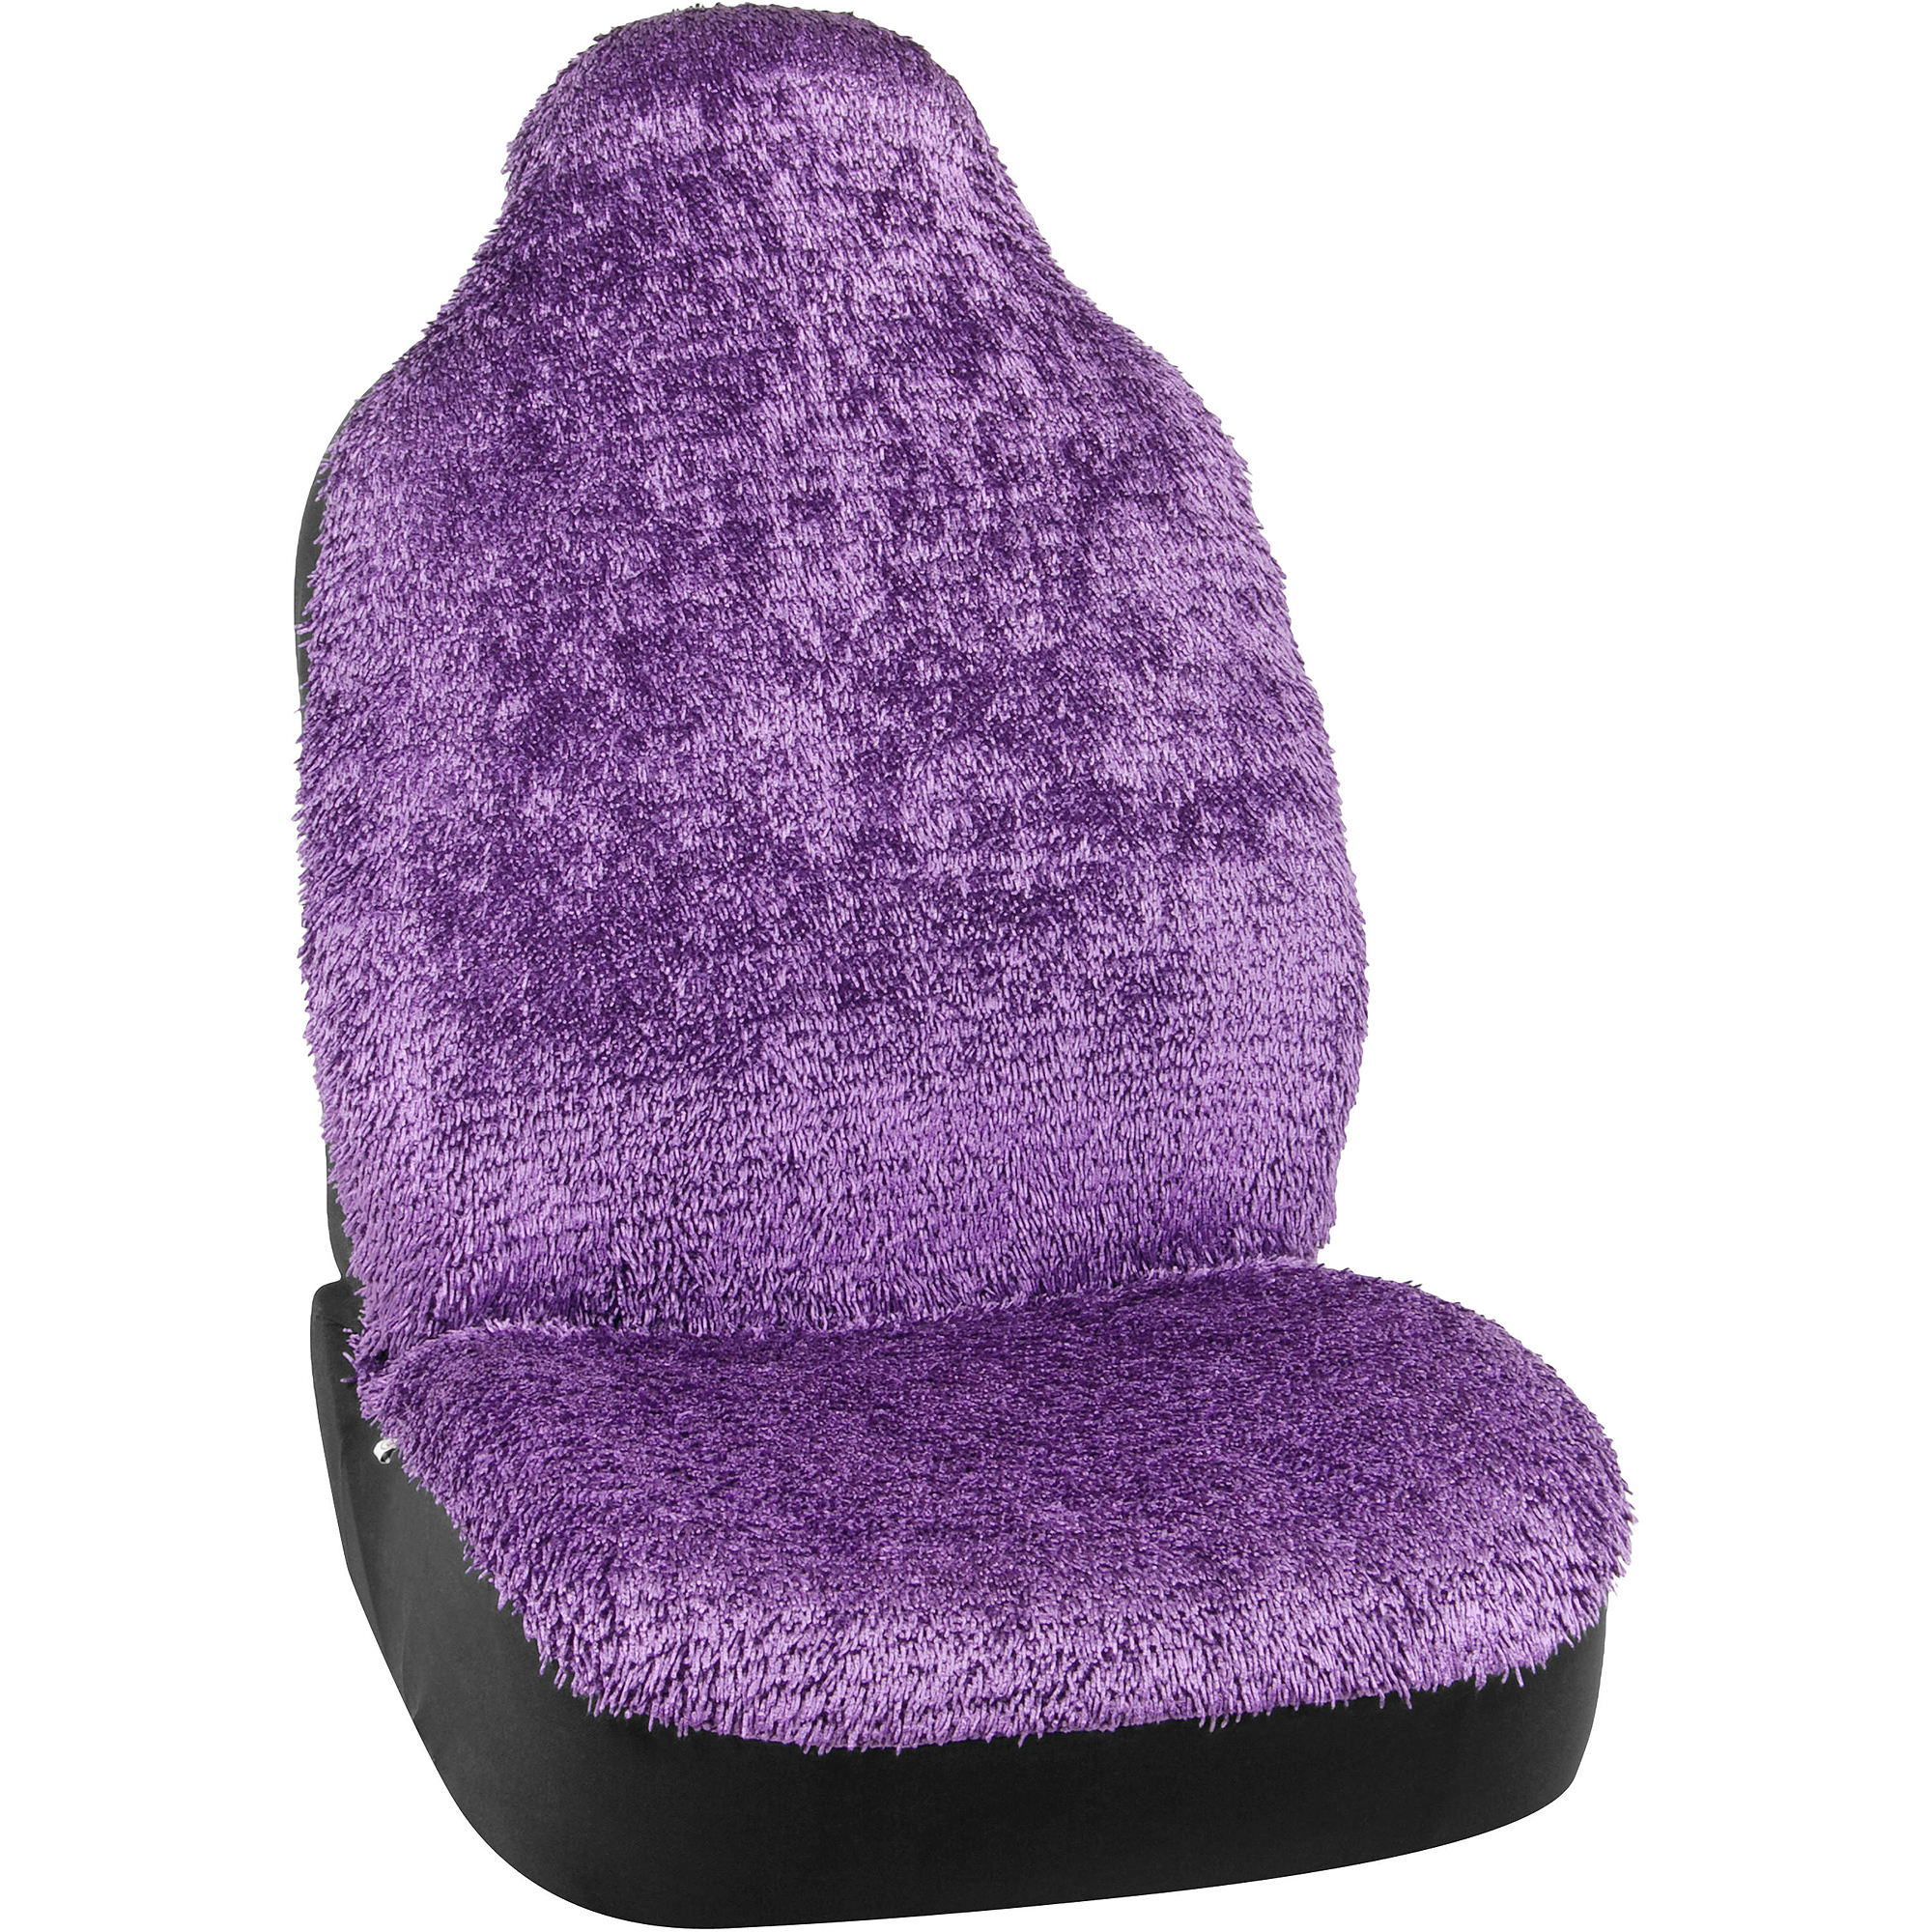 Auto Drive Shiny Shaggy Purple Seat Cover